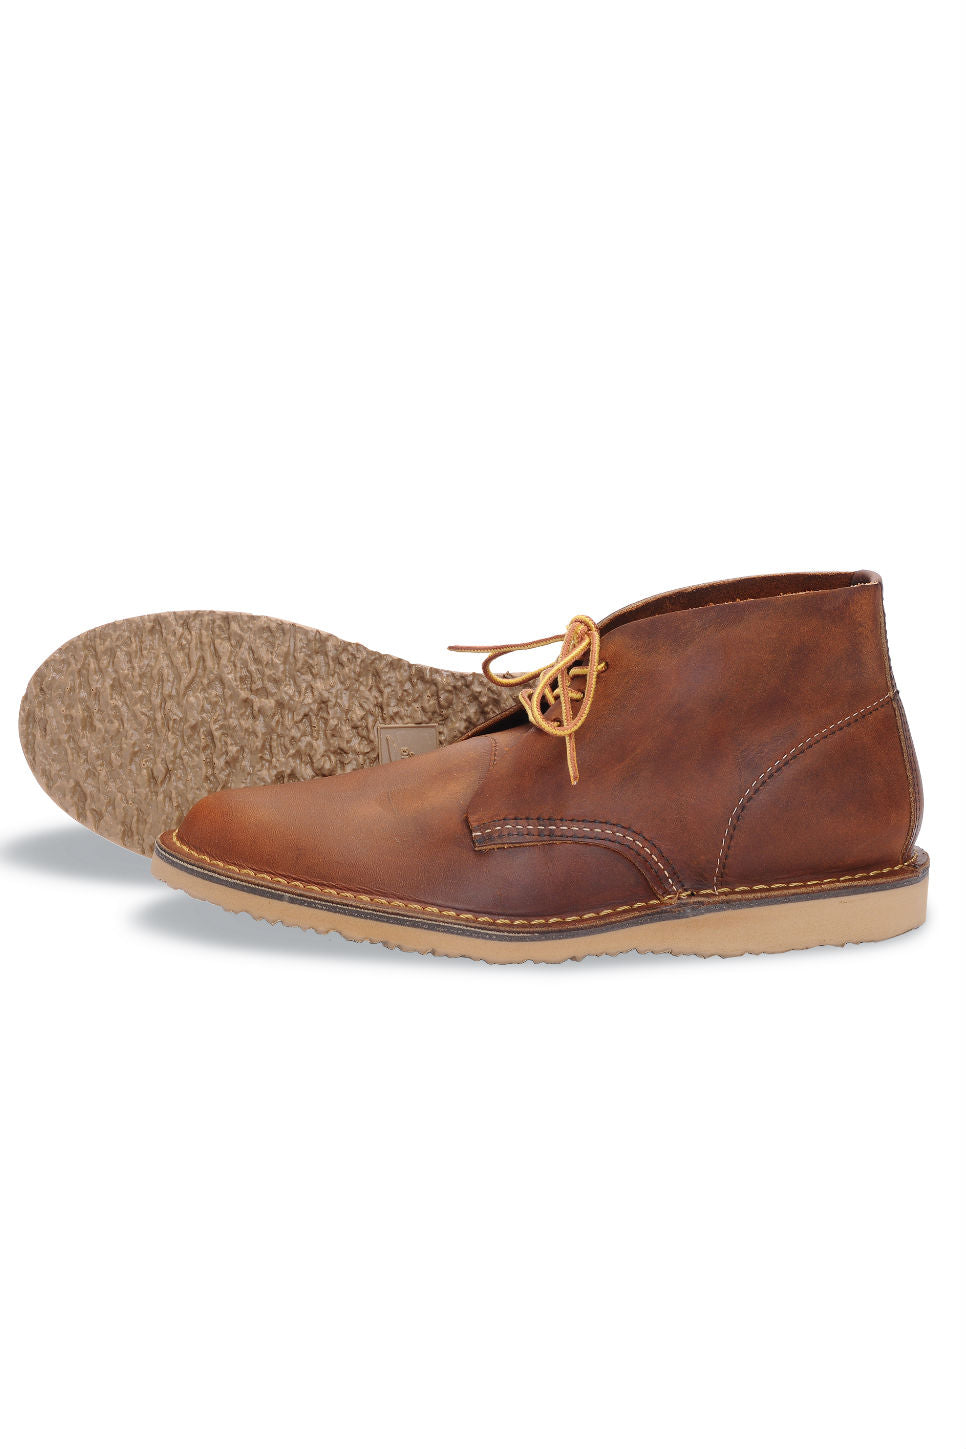 Red Wing Heritage - Weekender Chukka - Copper